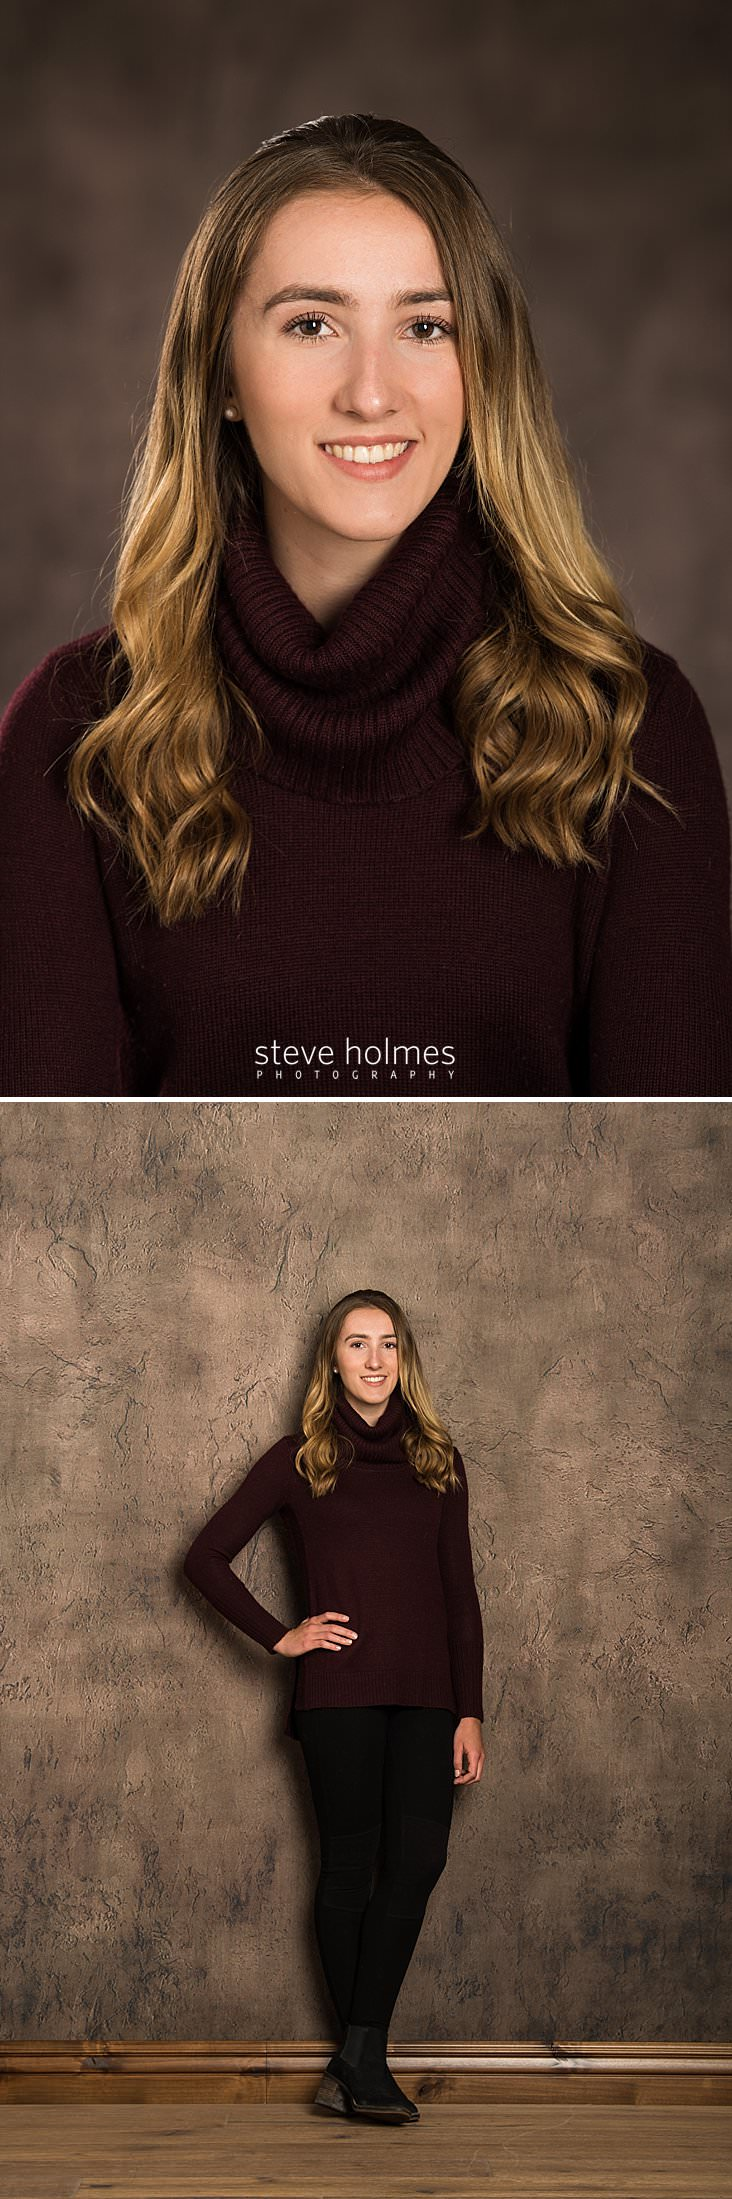 02_Close up portrait of young woman wearing maroon turtleneck.jpg